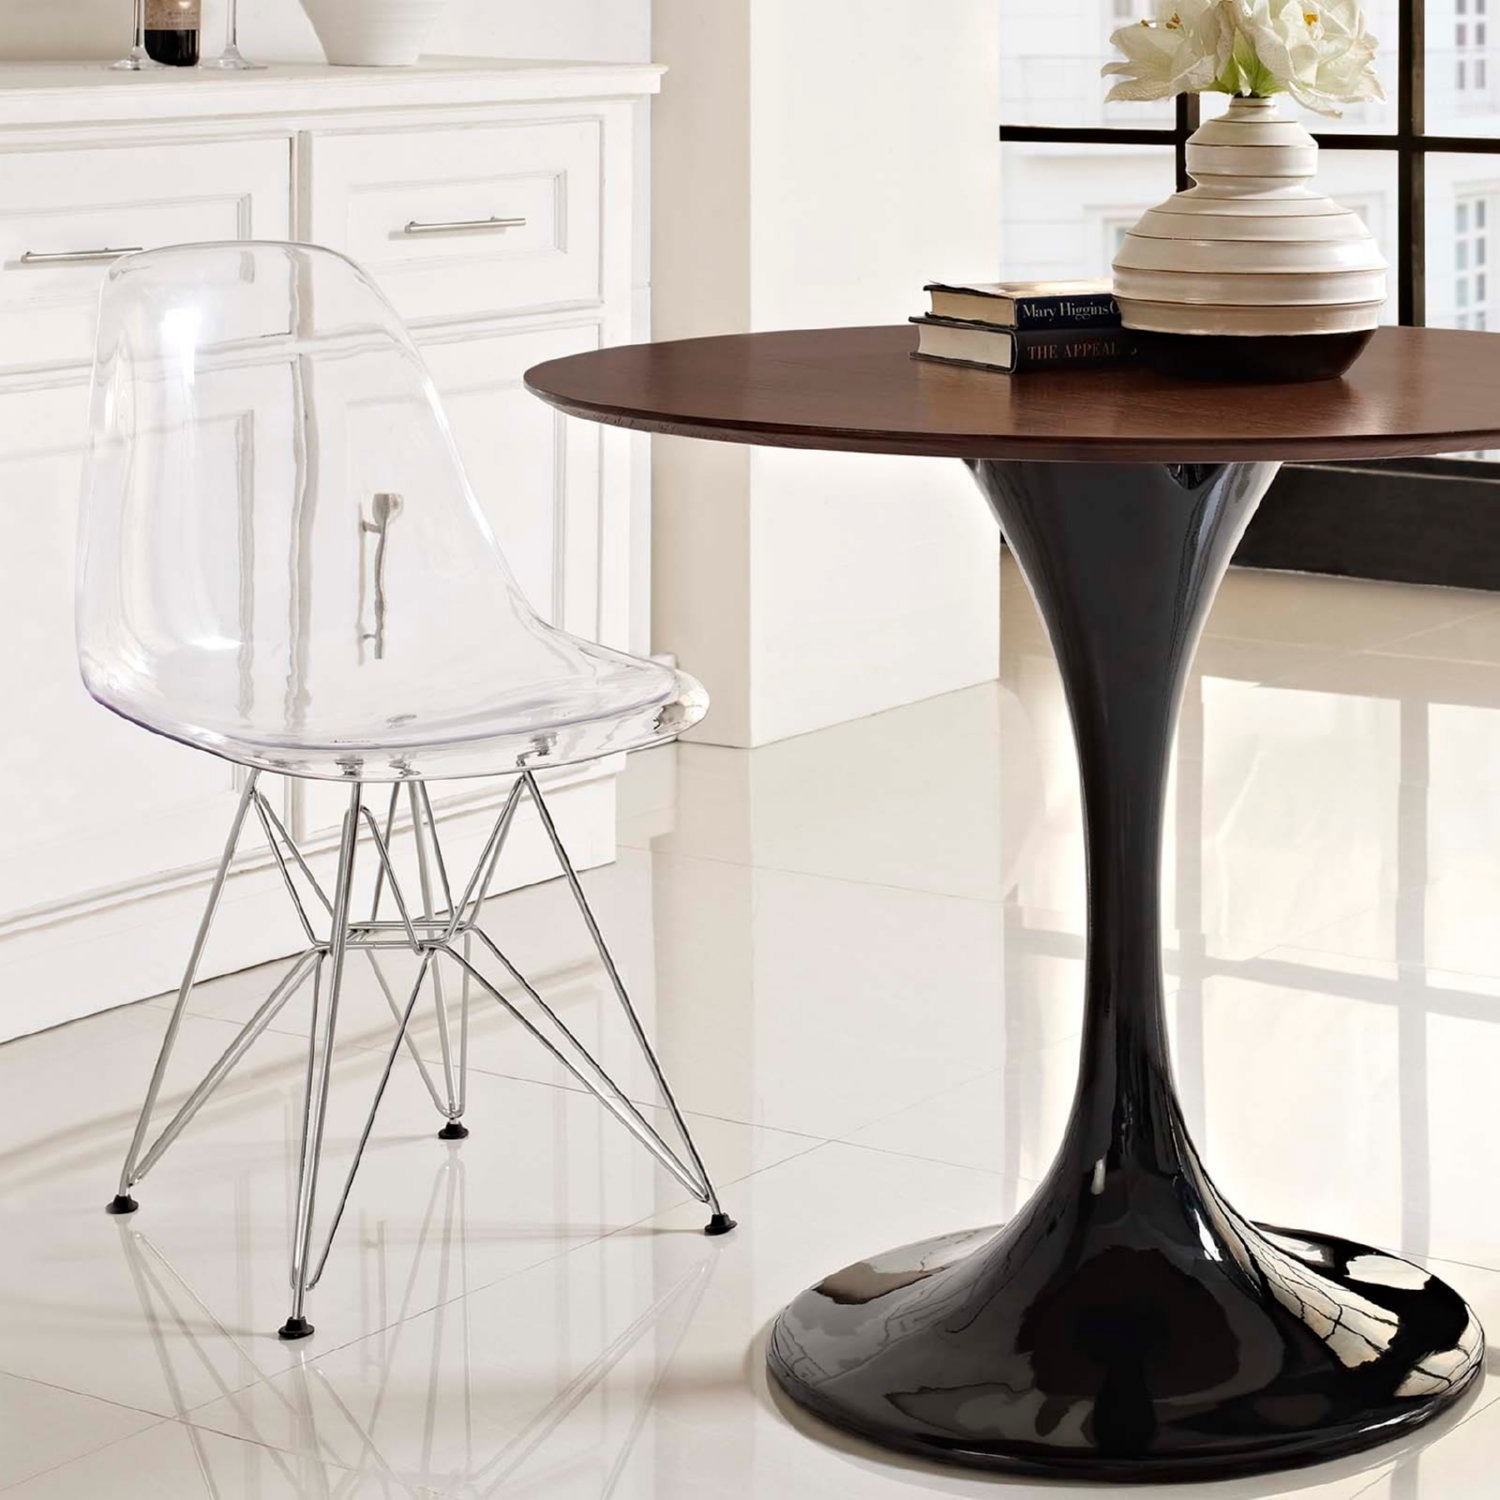 Modern Dining Chair In Clear Finish W/ Wire Legs - image-3